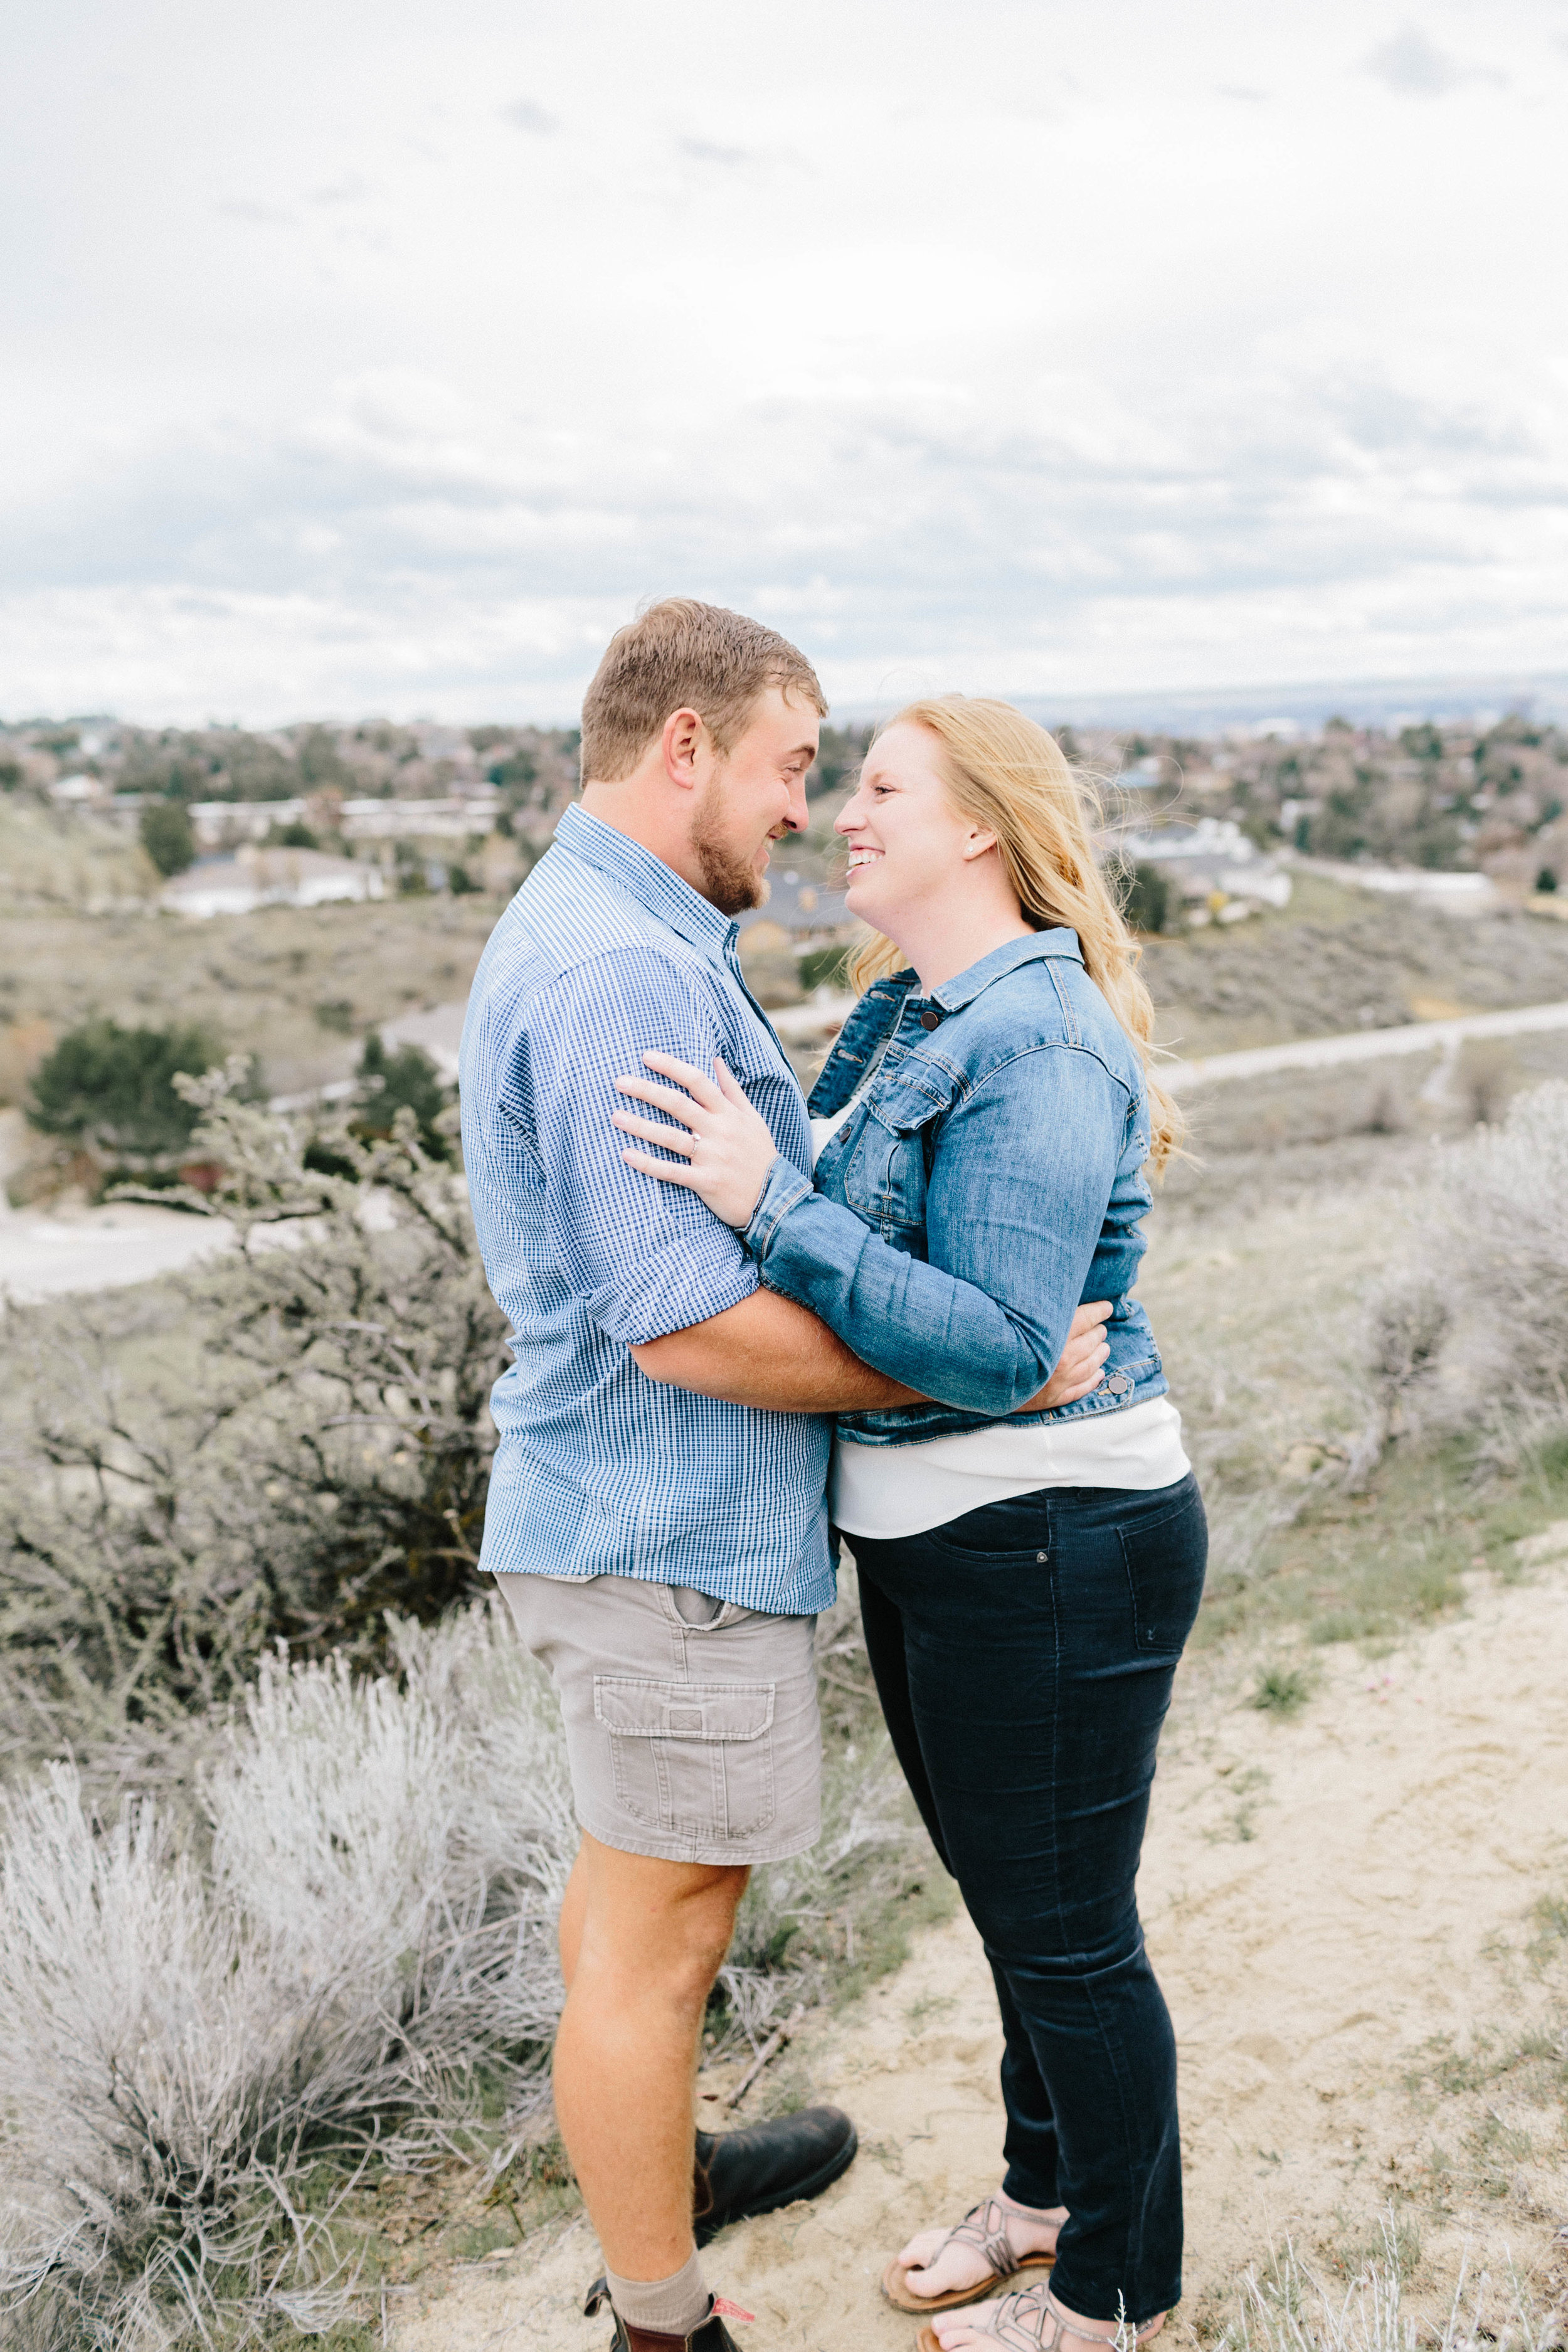 Rohan-and-Lydia-Boise-Foothills-Engagement-Session-47.jpg